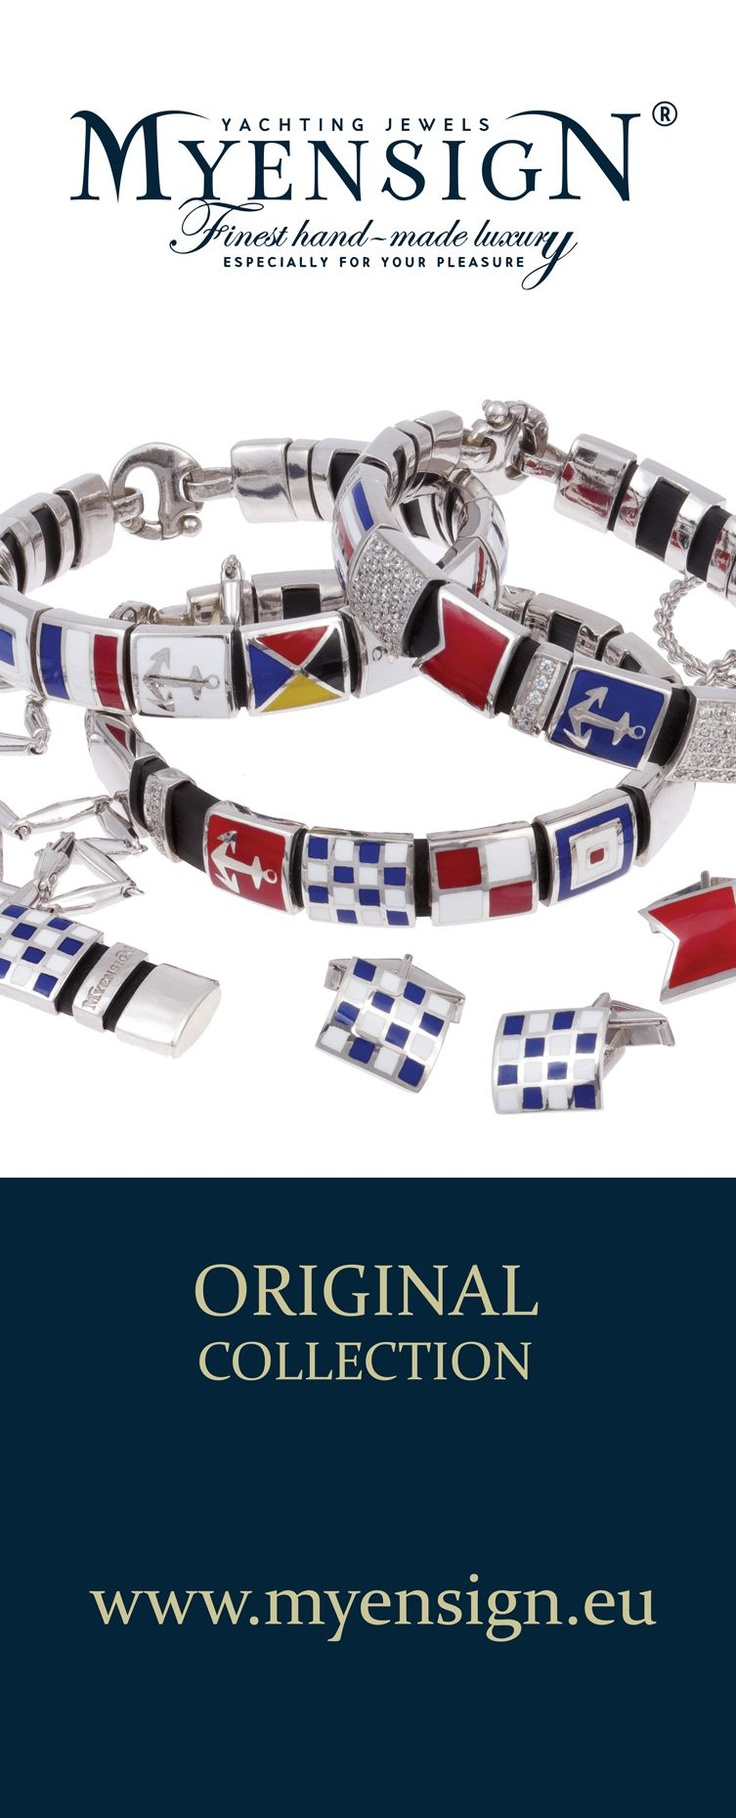 MyEnsign Yachting Jewels Original Collection   www.myensign.eu  #Yachting #Sailing #Jewelry #Jewels Nautical jewelry based on nautical flags made of gold with diamonds, using the highest quality enamel technology.